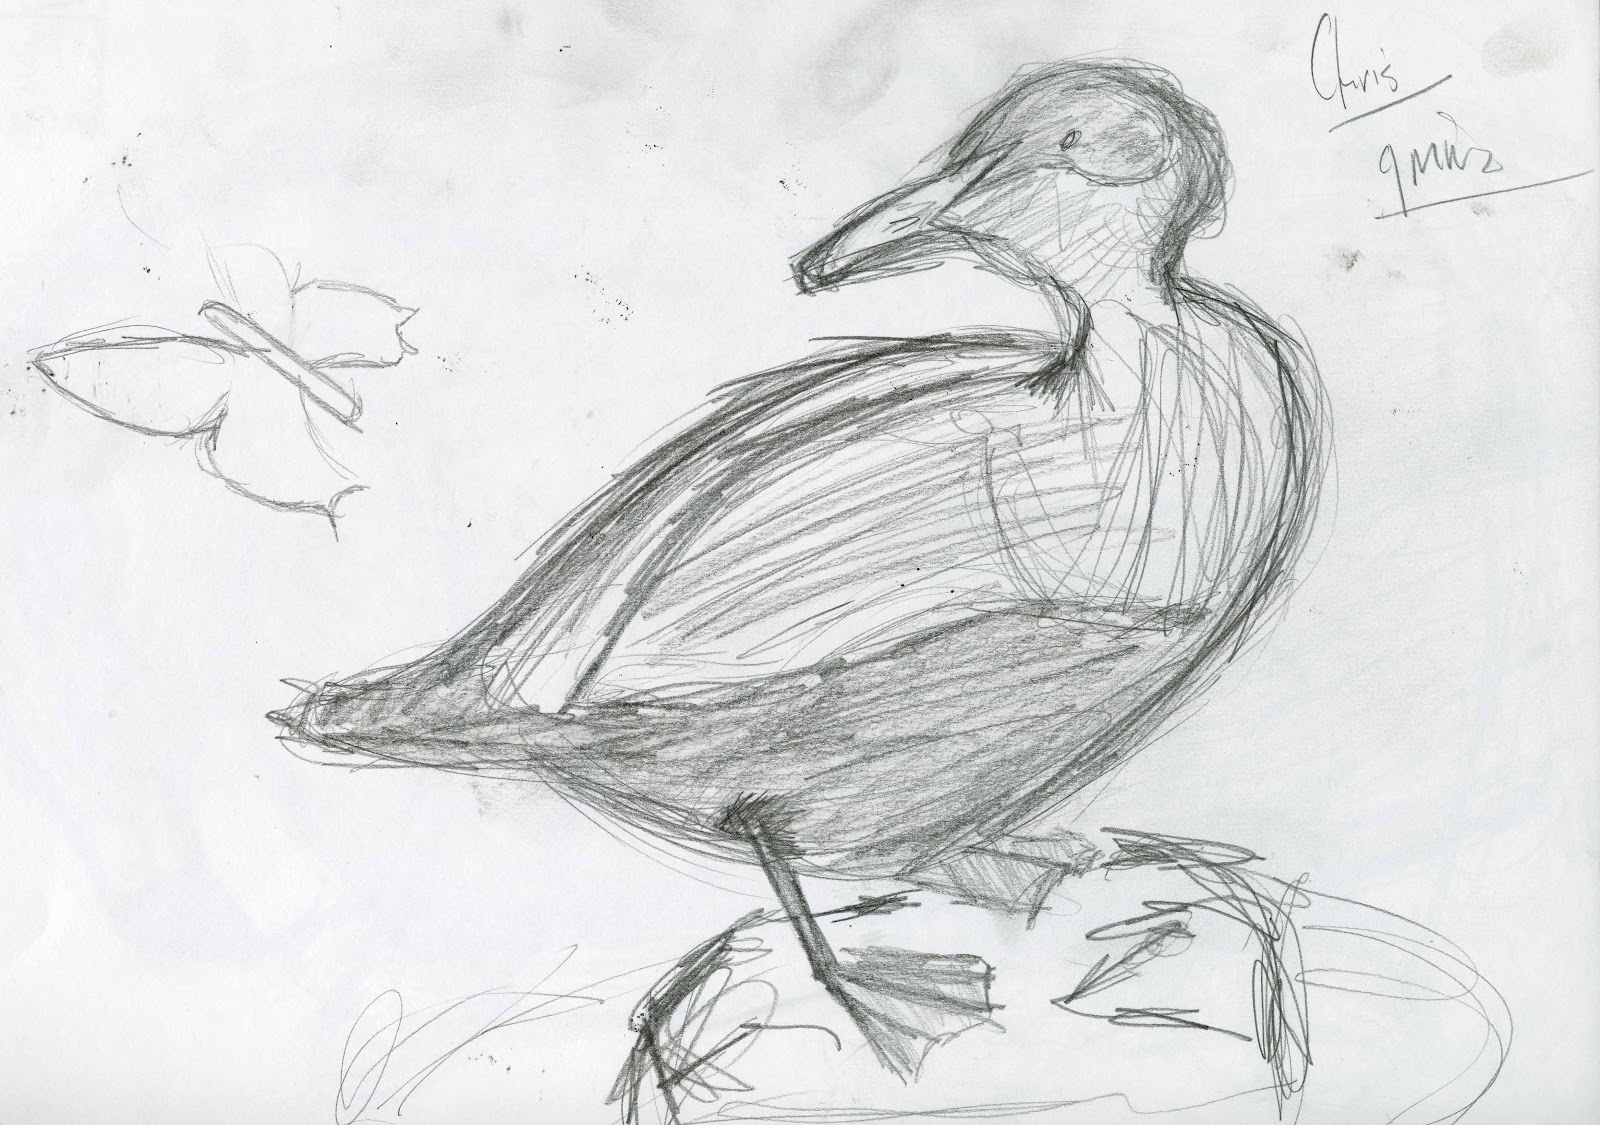 This duck is a very quick sketch as warm up the main focus of this was to get the main shape getting correct angles and proportion